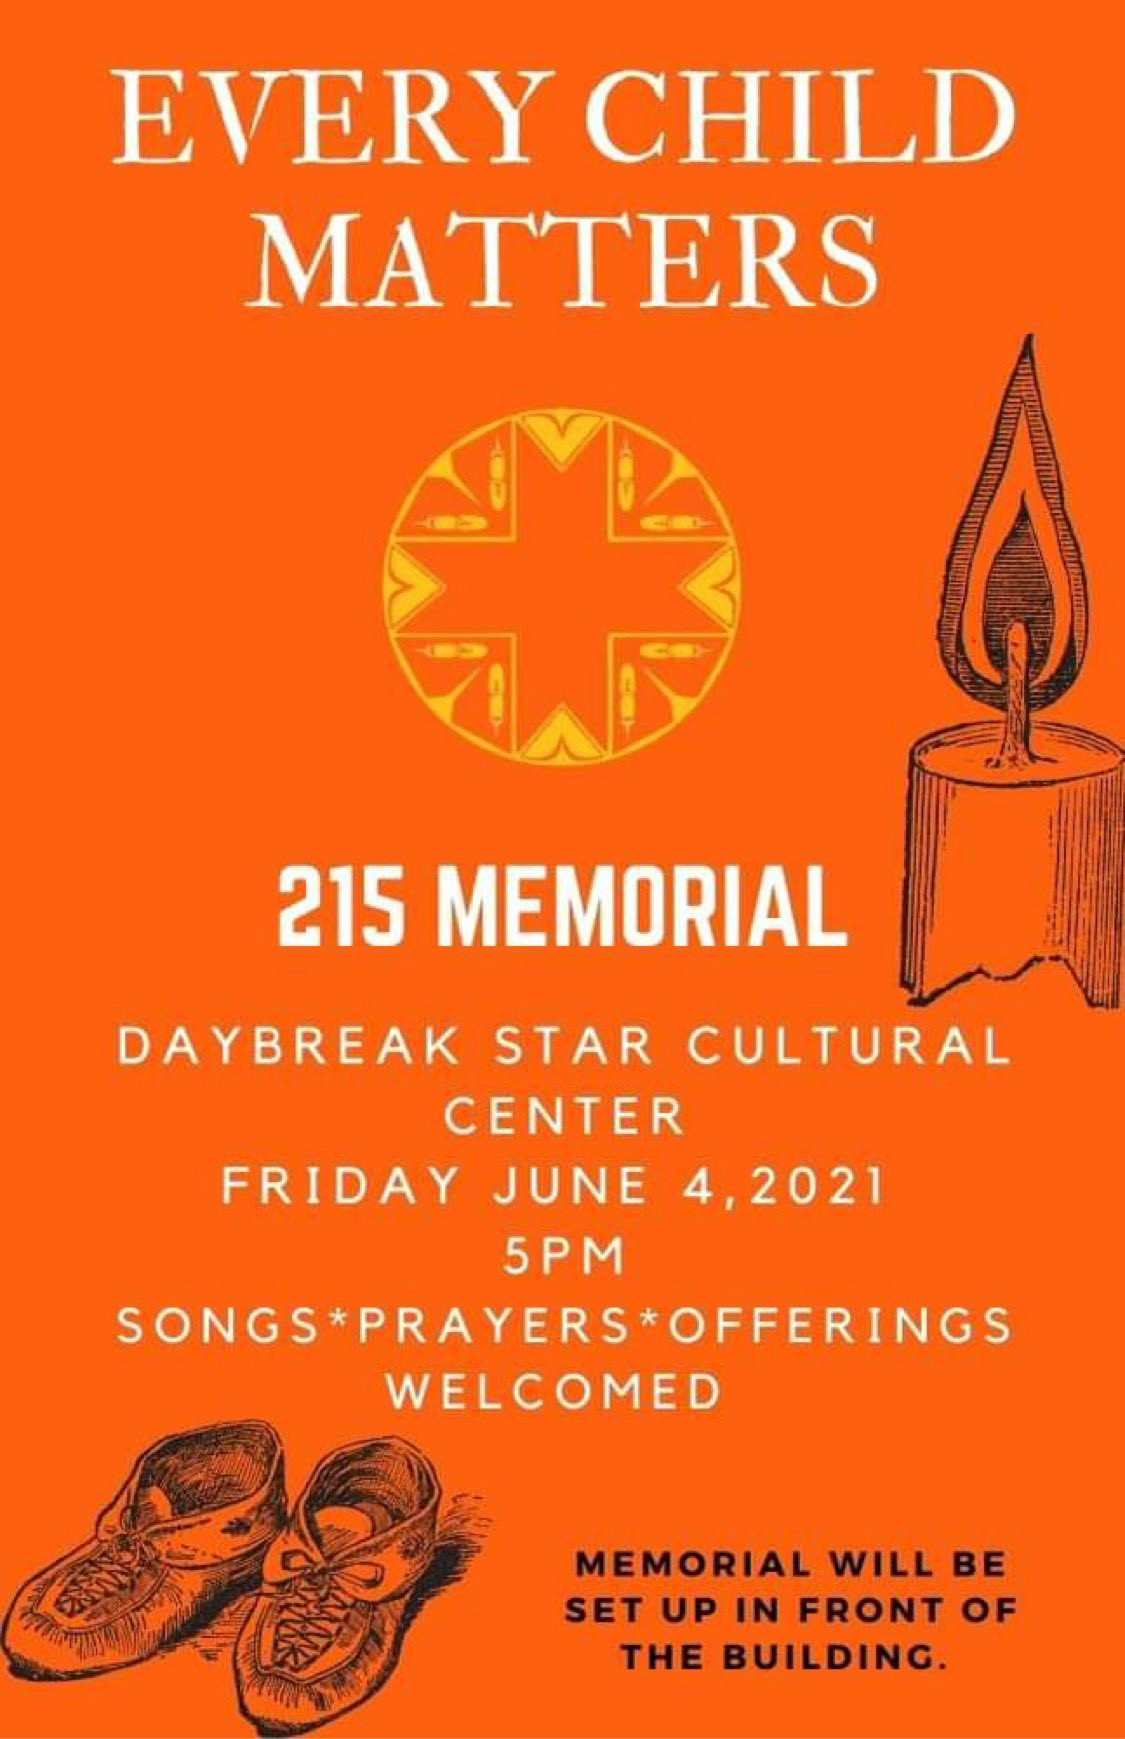 Every Child Matters: 215 Memorial. Daybreak Star Cultural Center, Friday June 4, 2021, 5pm